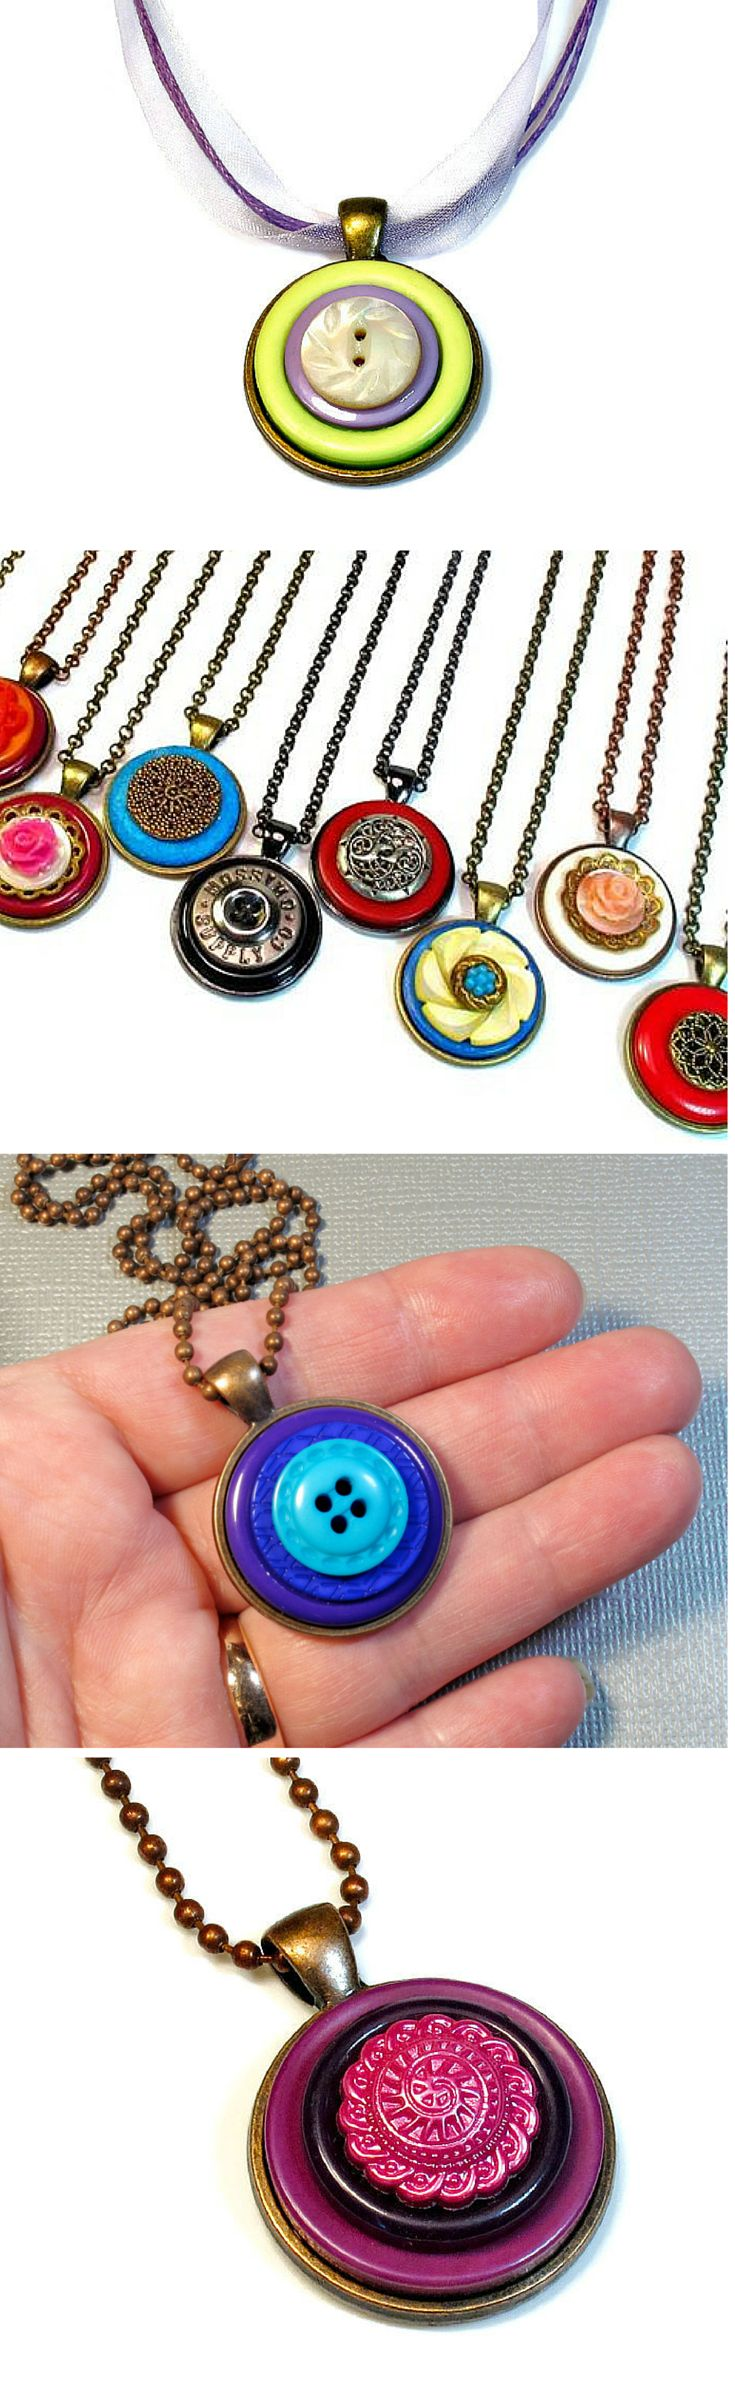 Button jewelry, necklace pendants on Etsy by BluKatDesign. Find them HERE: https://www.etsy.com/shop/BluKatDesign?section_id=17077952&ref=shopsection_leftnav_5